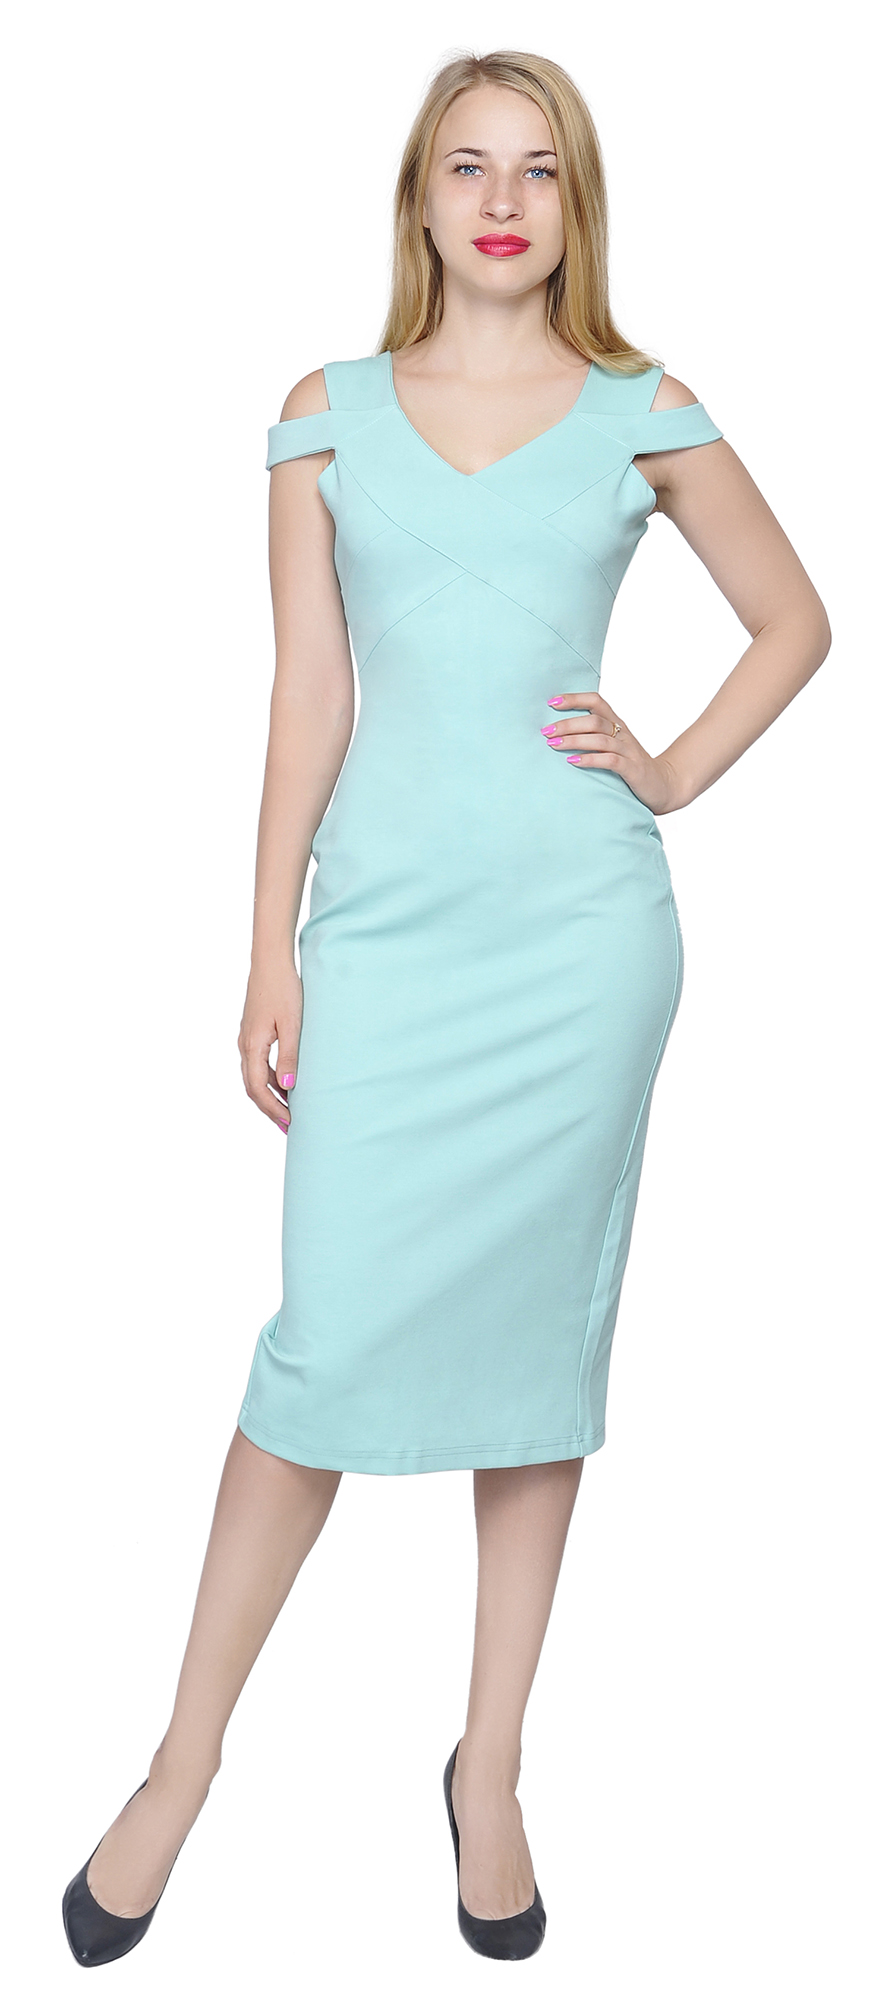 MARYCRAFTS WOMEN\'S ELEGANT FITTED PENCIL MIDI DRESS COCKTAIL PARTY ...